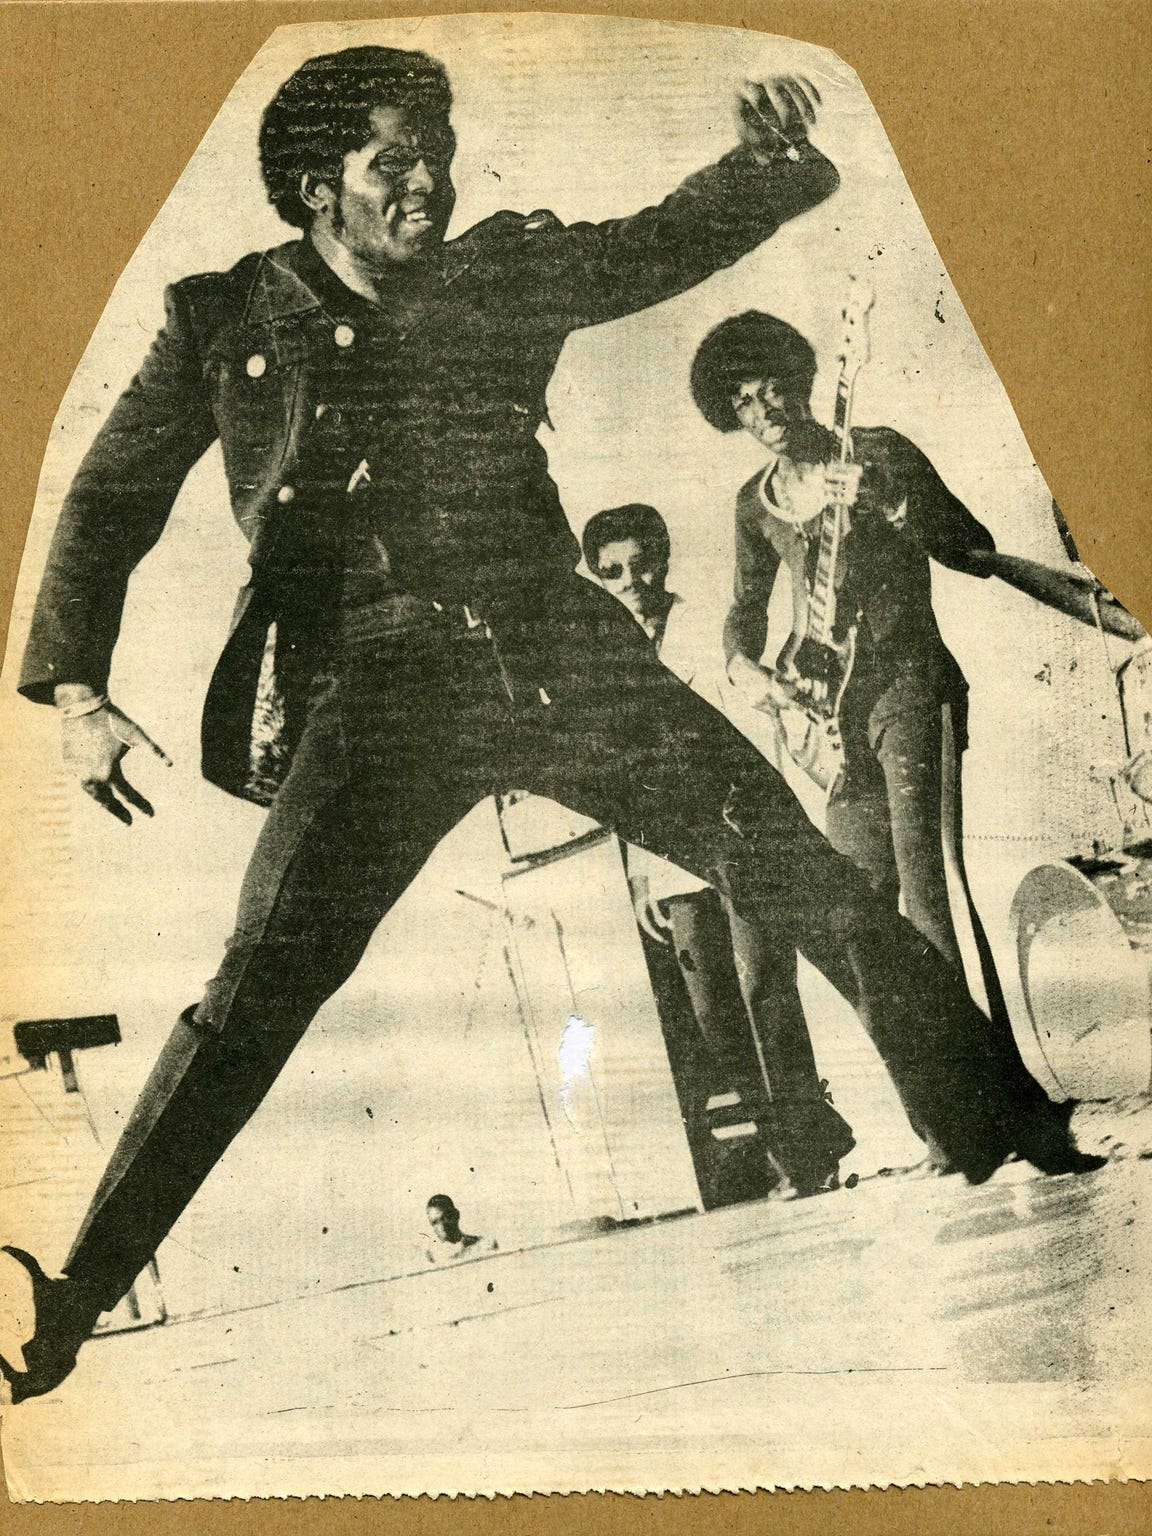 James Brown with Bootsy Collins playing bass in the background, circa 1970.